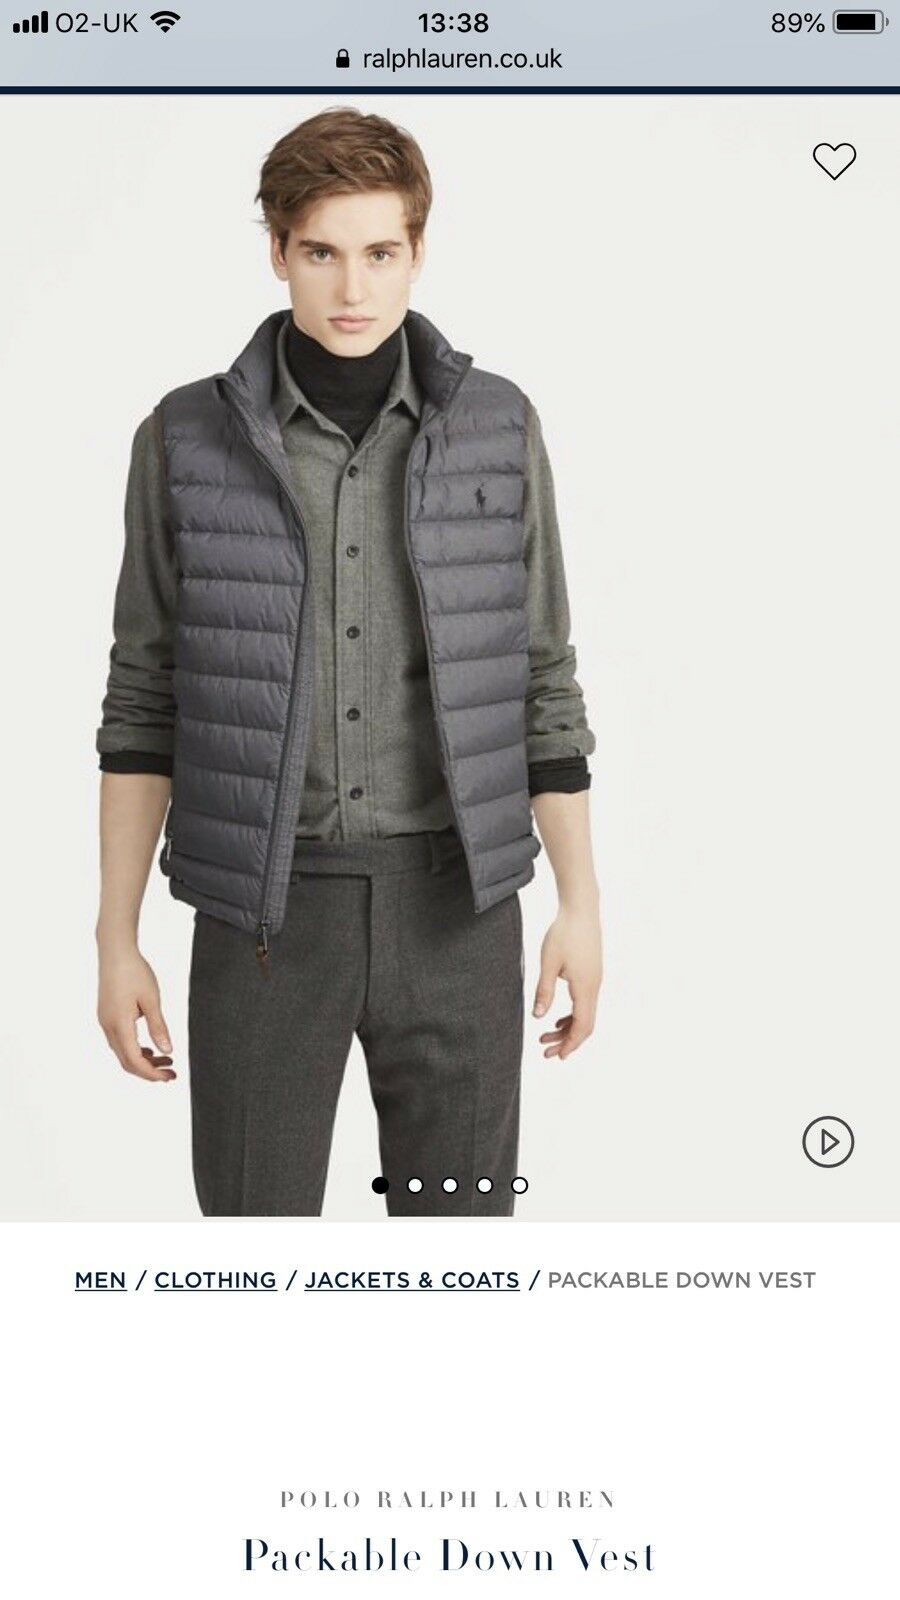 Polo Ralph Lauren Body Warmer, Grey, Large, New With Tags